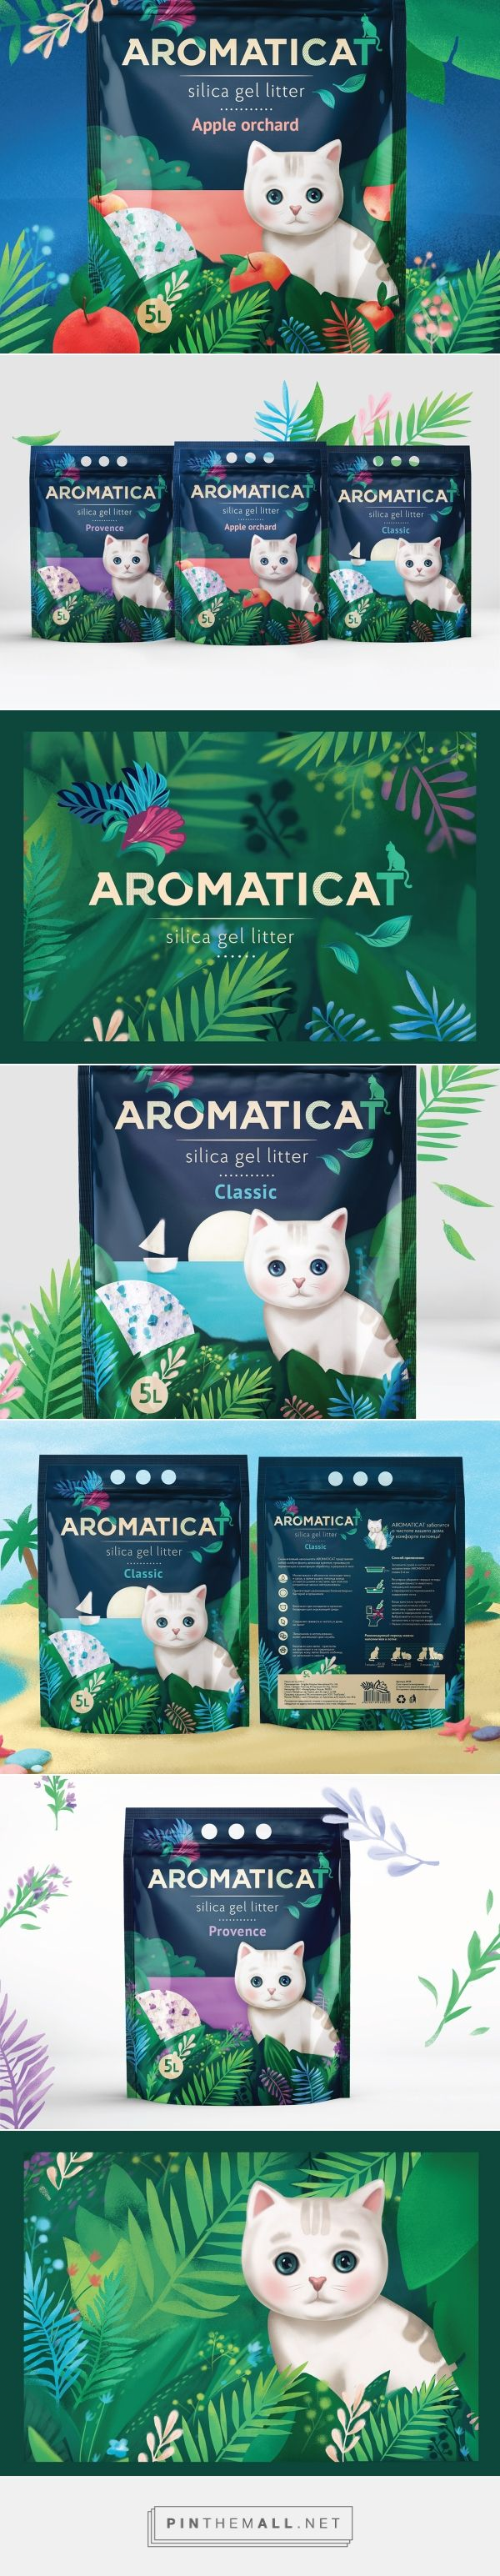 Illustration, graphic design and packaging for Aromaticat on Behance By Dochery St. Pertersburg, Russia.  So cute and clever branding for the packaging smile file : )